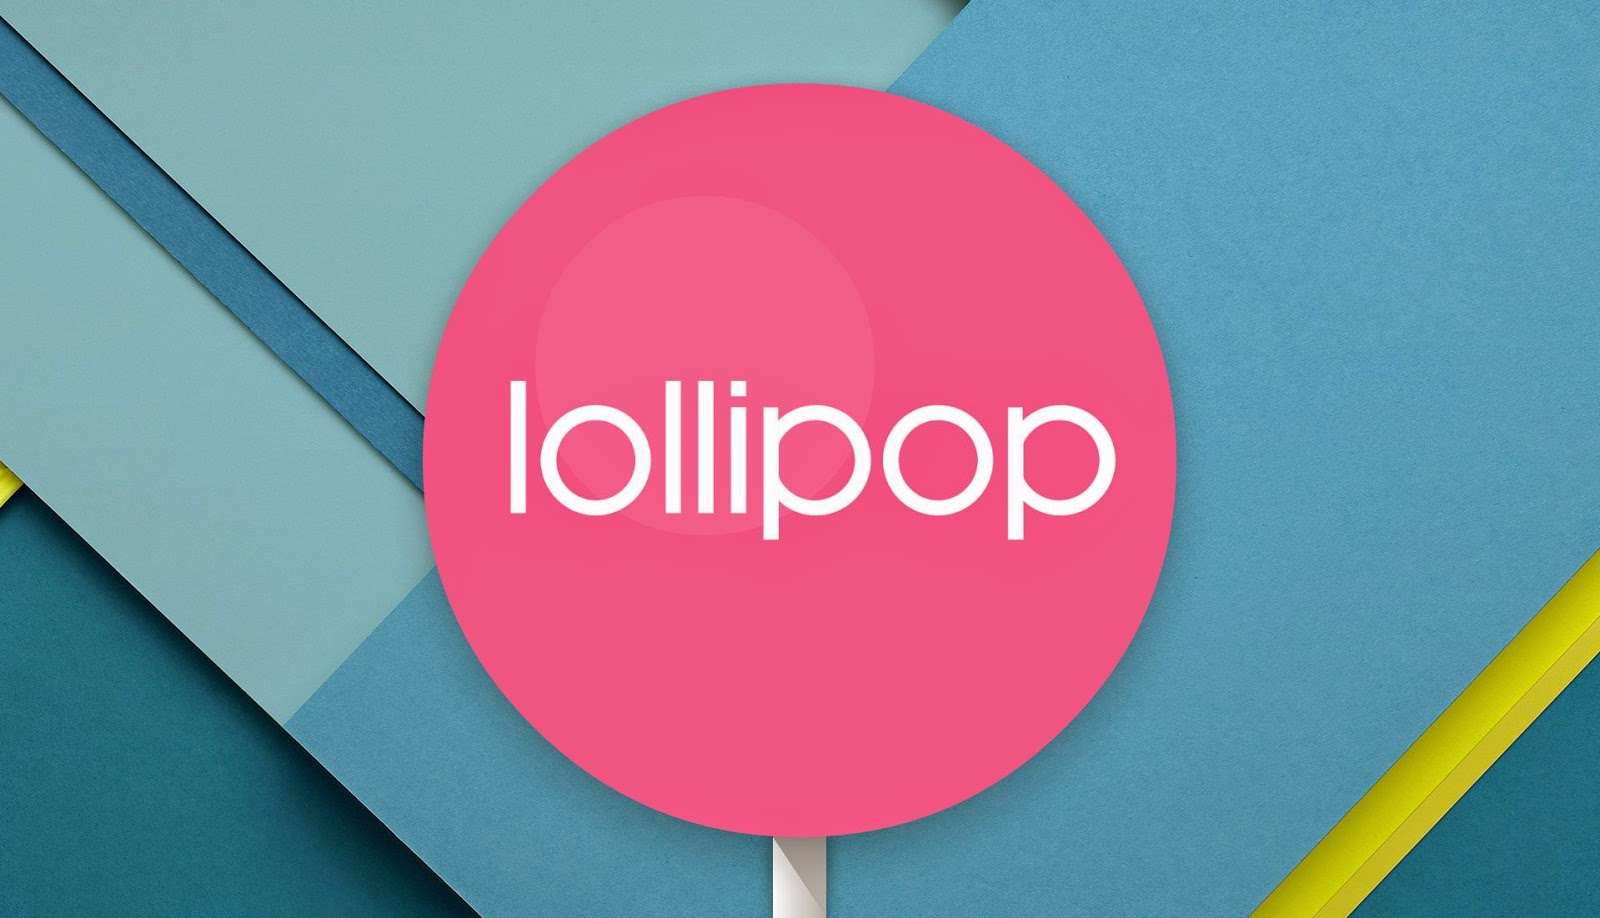 Noobslounge Mediatech Speaker Portable Mp3 002 Turbo Bass Pink Get The Fresh Android Lollipop 50 Look On Any Device